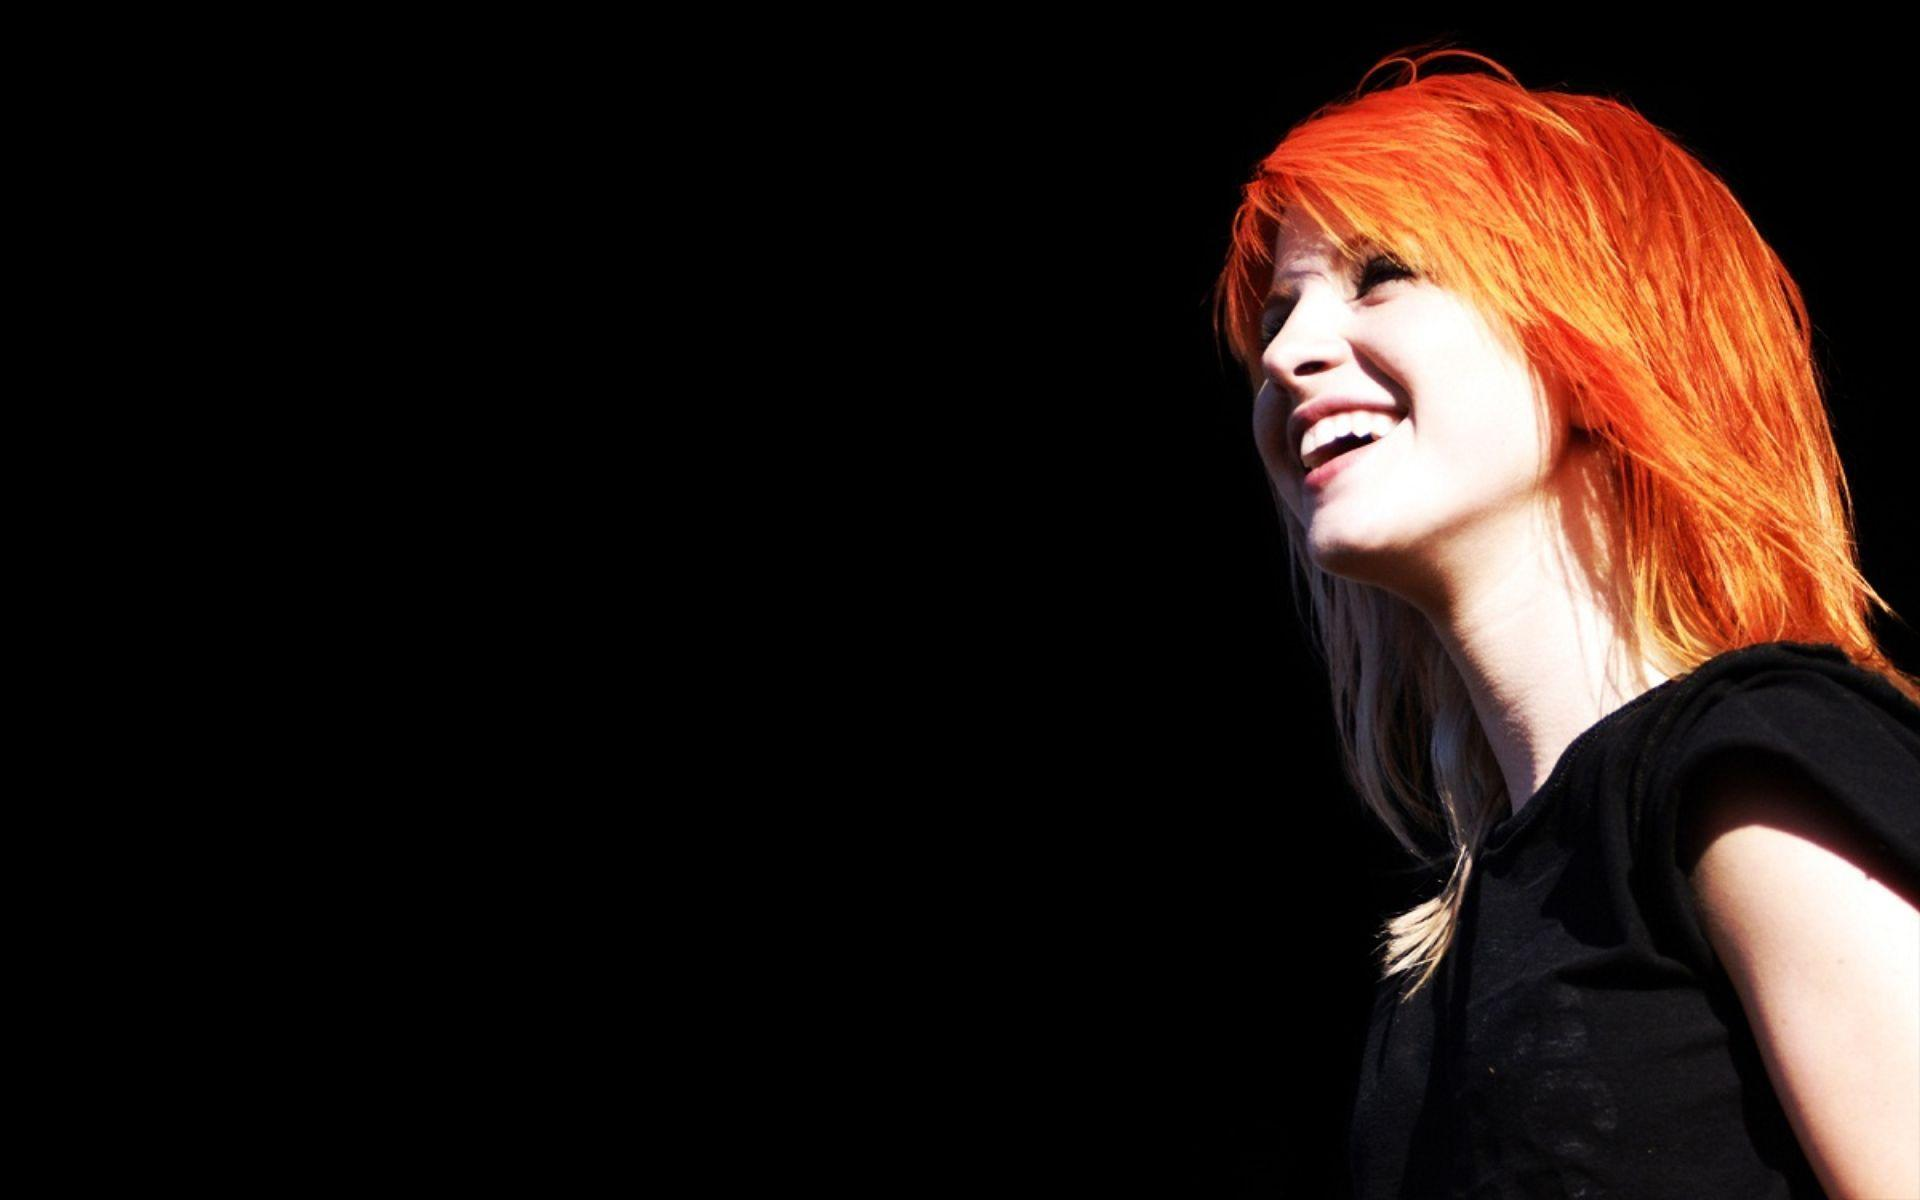 Hayley Williams Wallpaper 2   1920 X 1200 stmednet 1920x1200